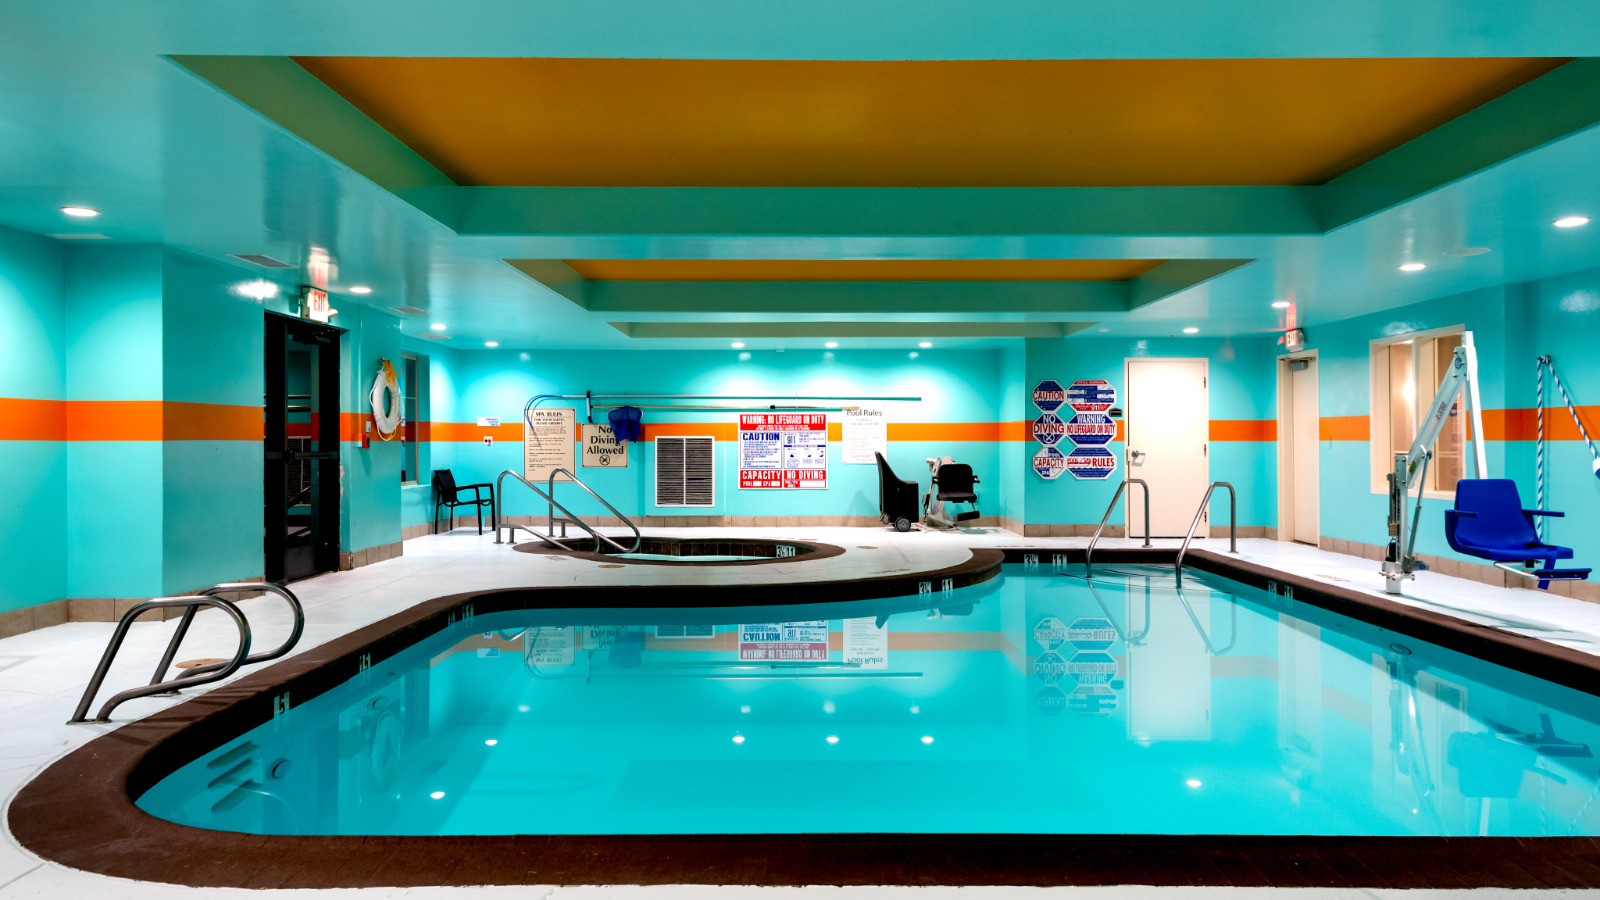 Hotel, Lathrop, California, Pool